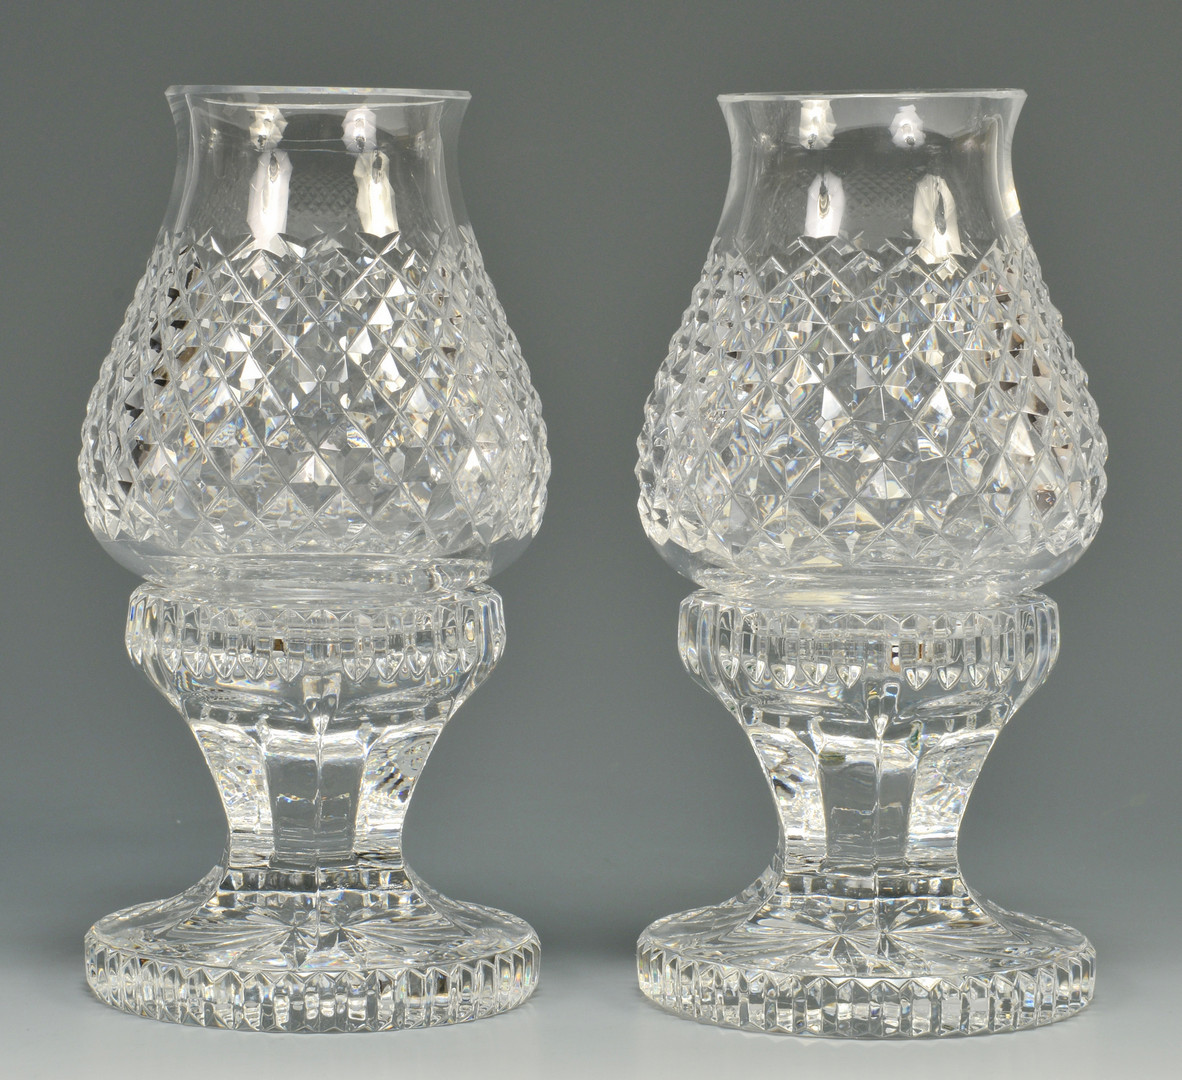 Lot 772: 13 Waterford Crystal Items